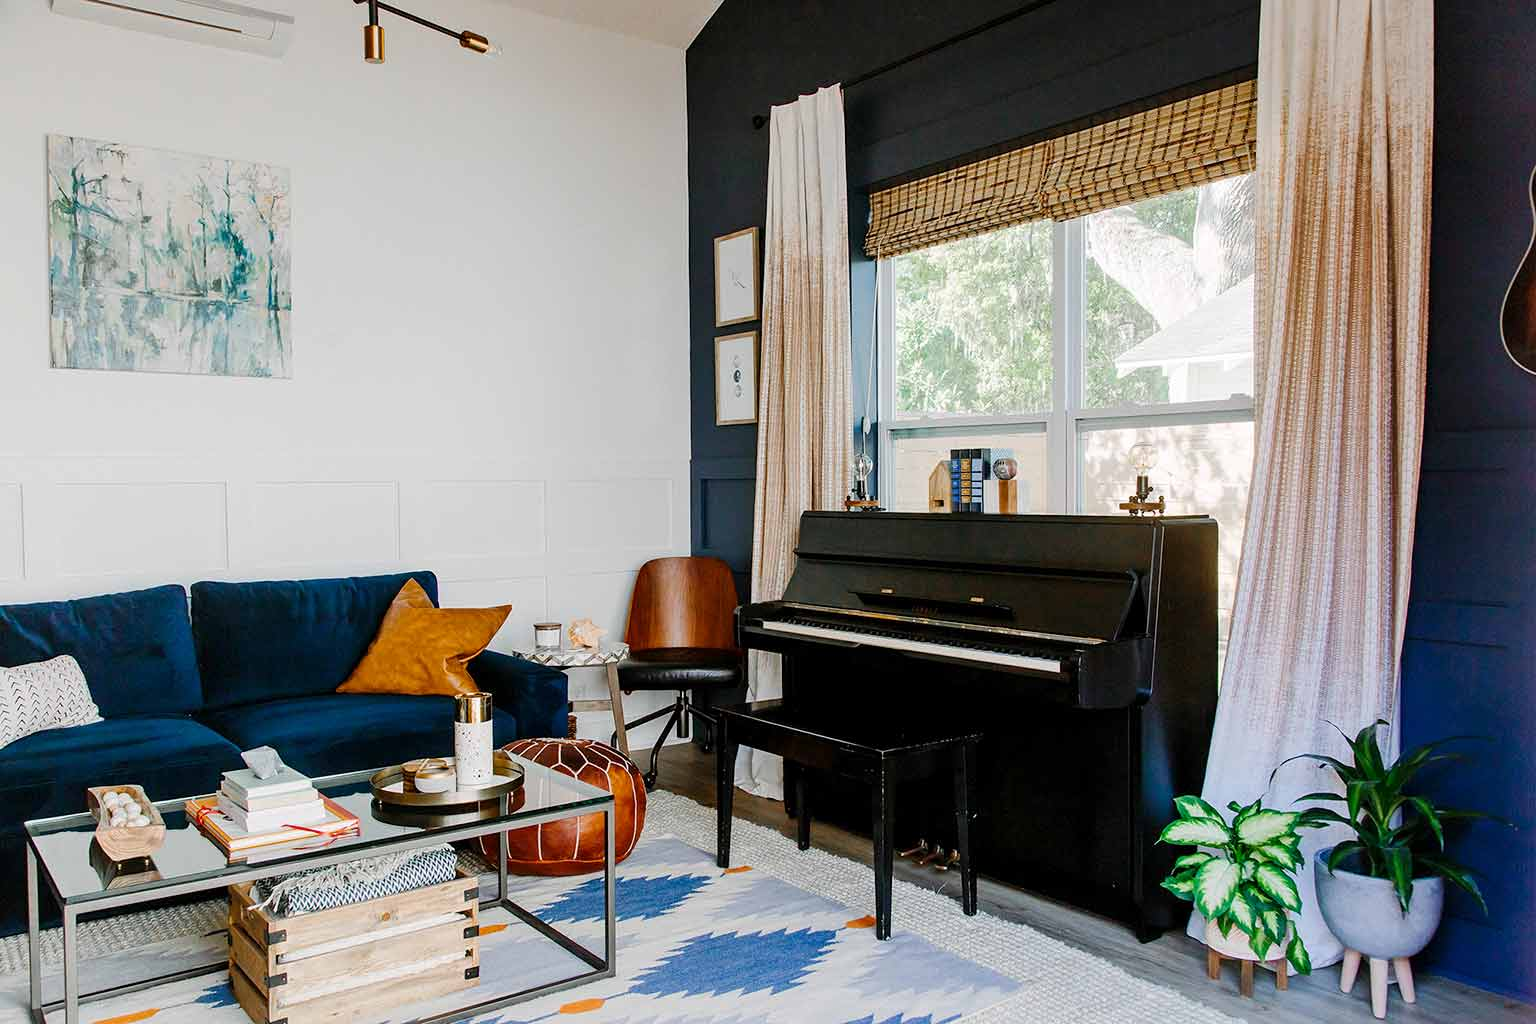 Mid-century modern guest house with a boho/eclectic twist - The Guest House Reveal - That Homebird Life Blog